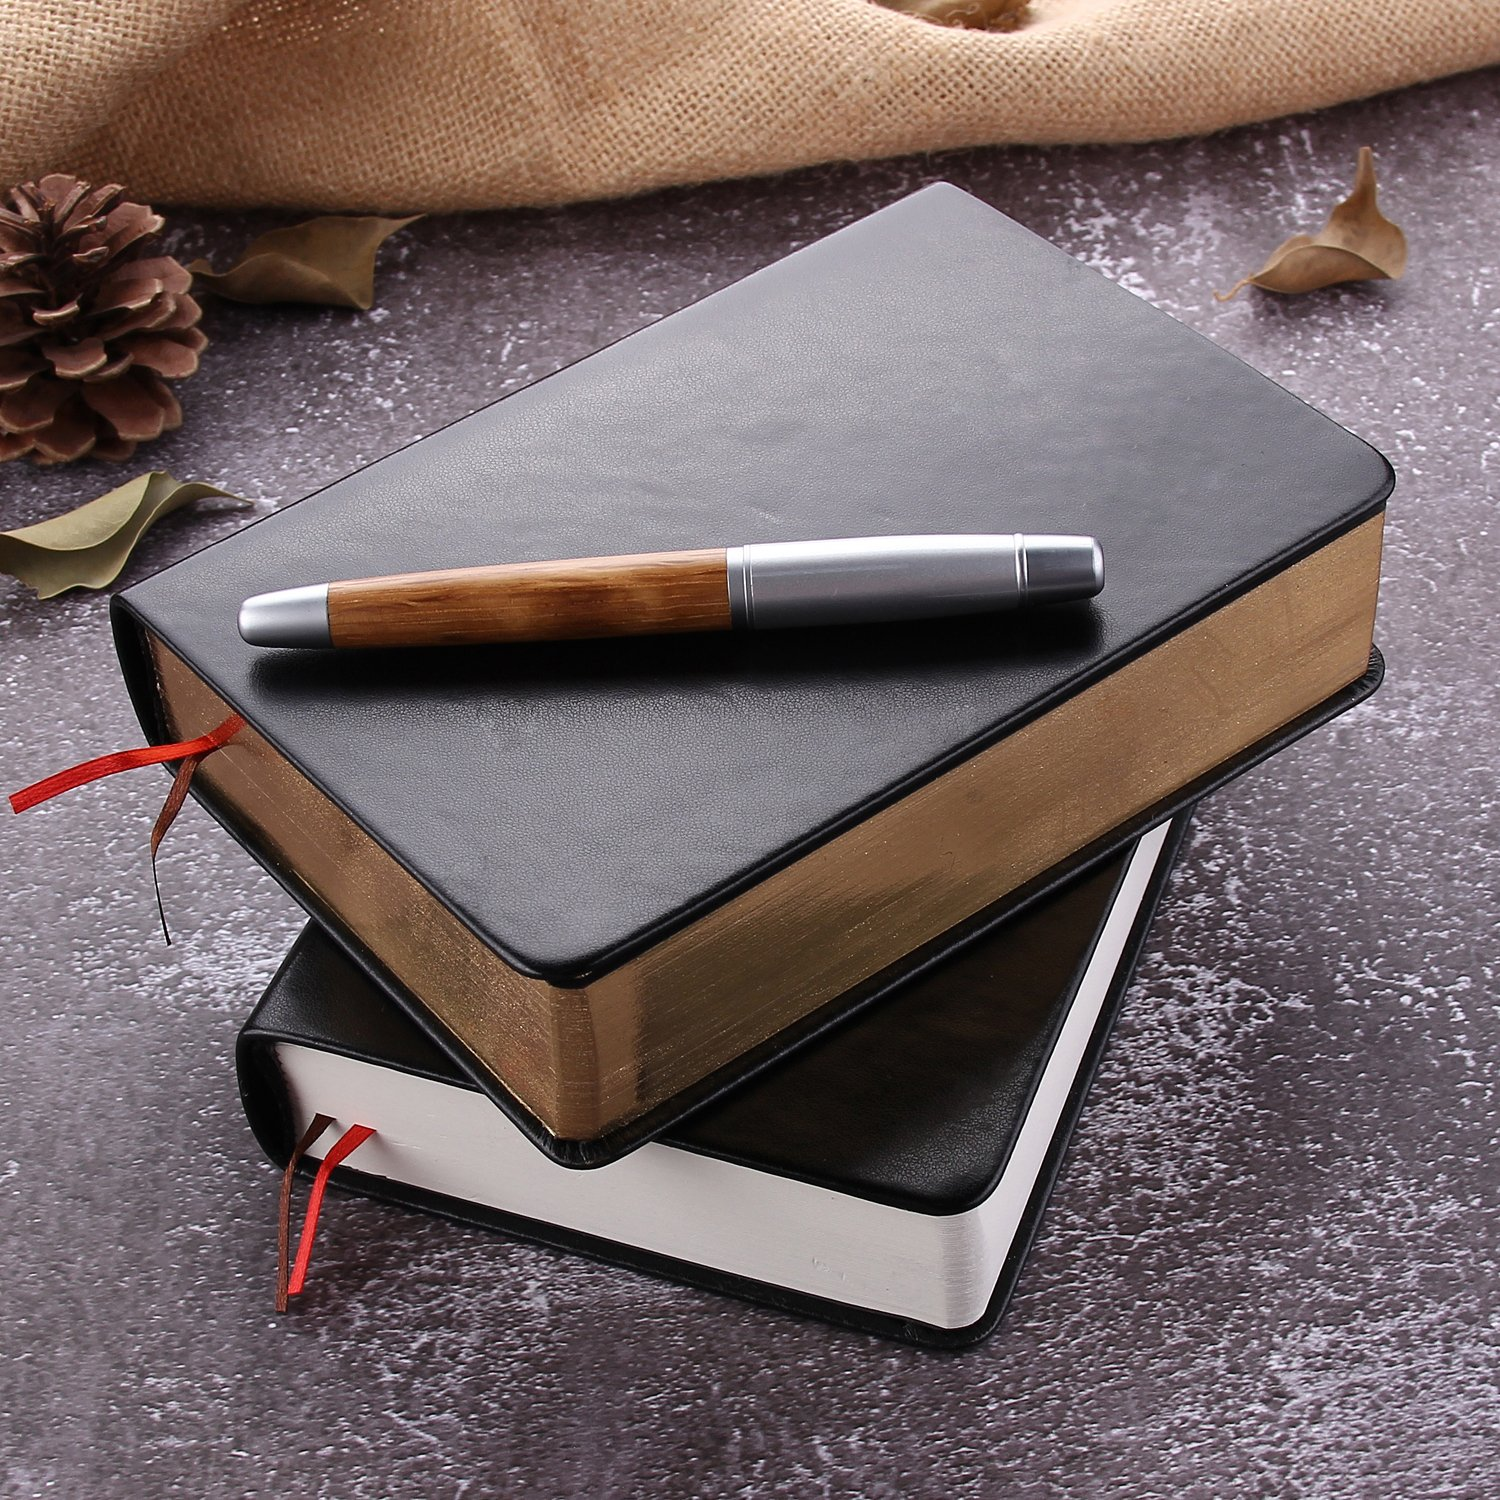 Two vintage style notebooks stacked with a wood grained pen on top.